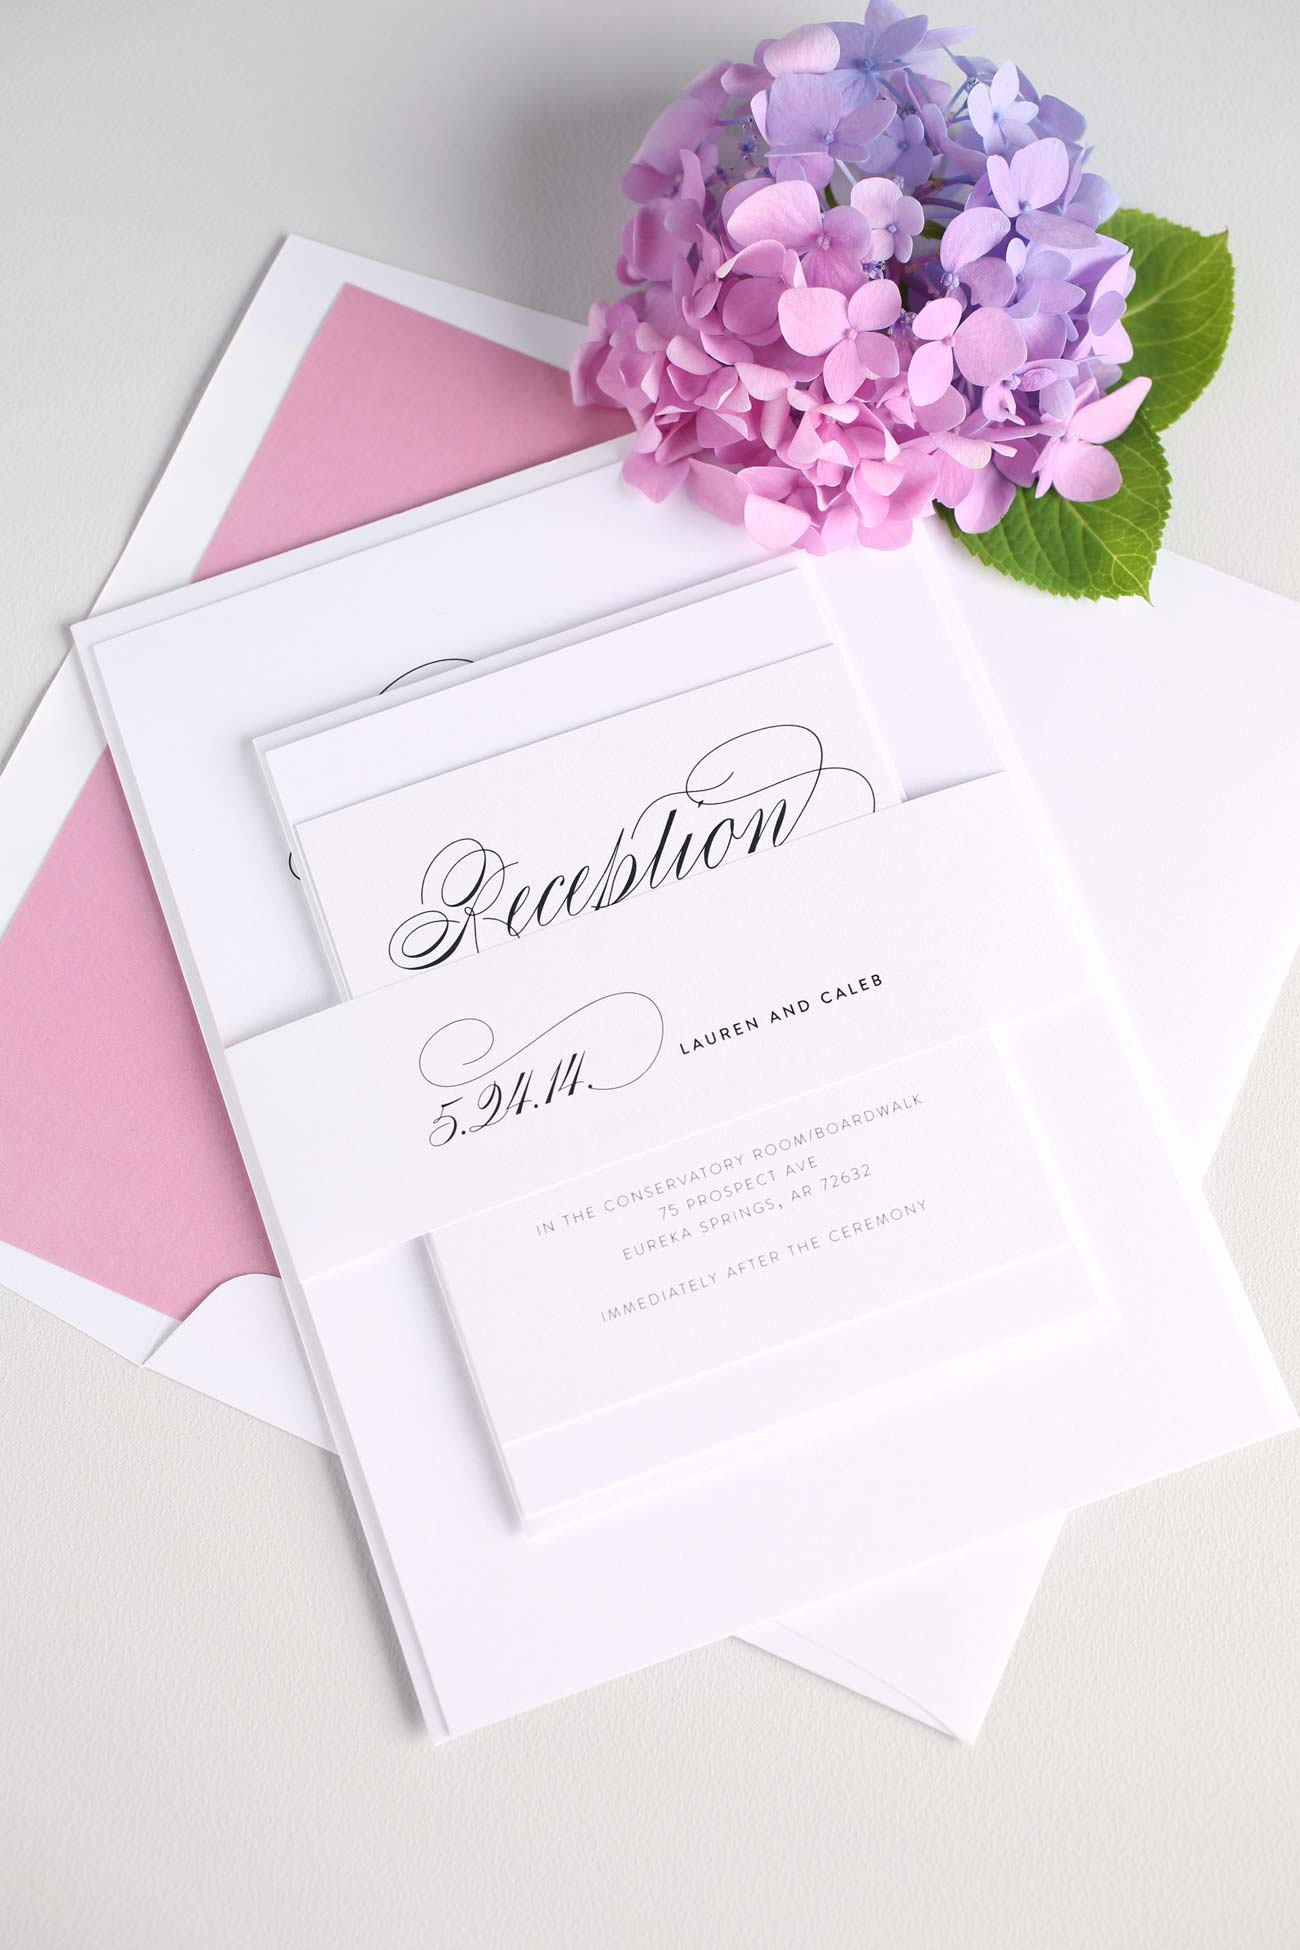 Script Wedding Invitations in rose pink